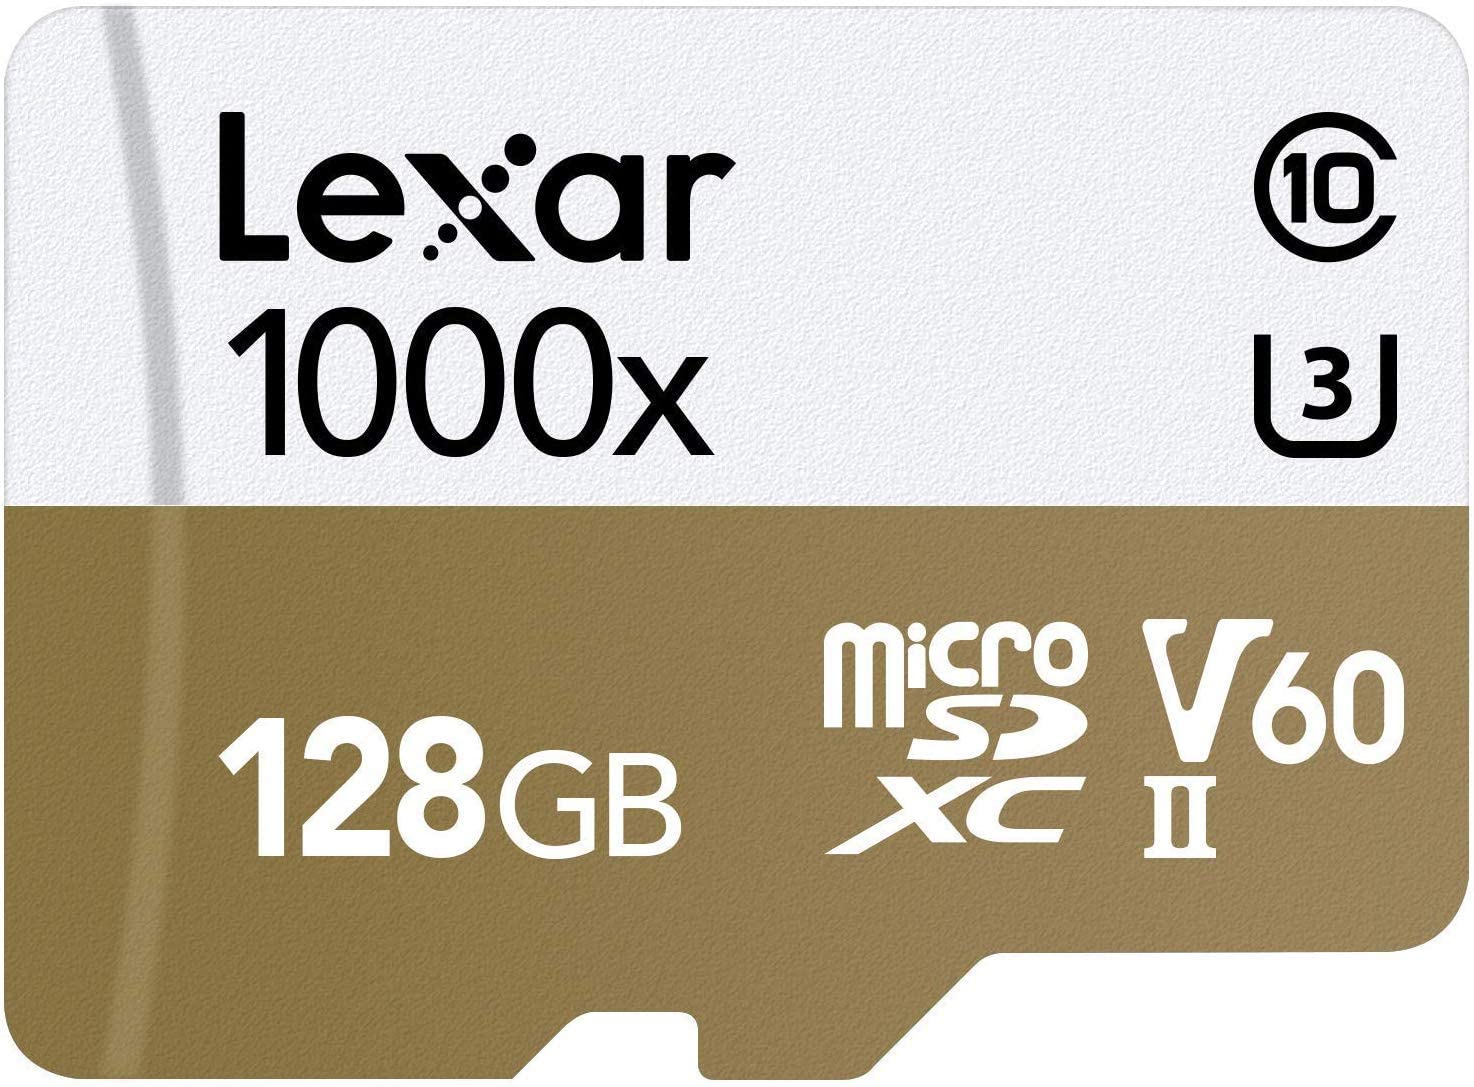 Lexar 1000x high performance micro sd card for surface pro